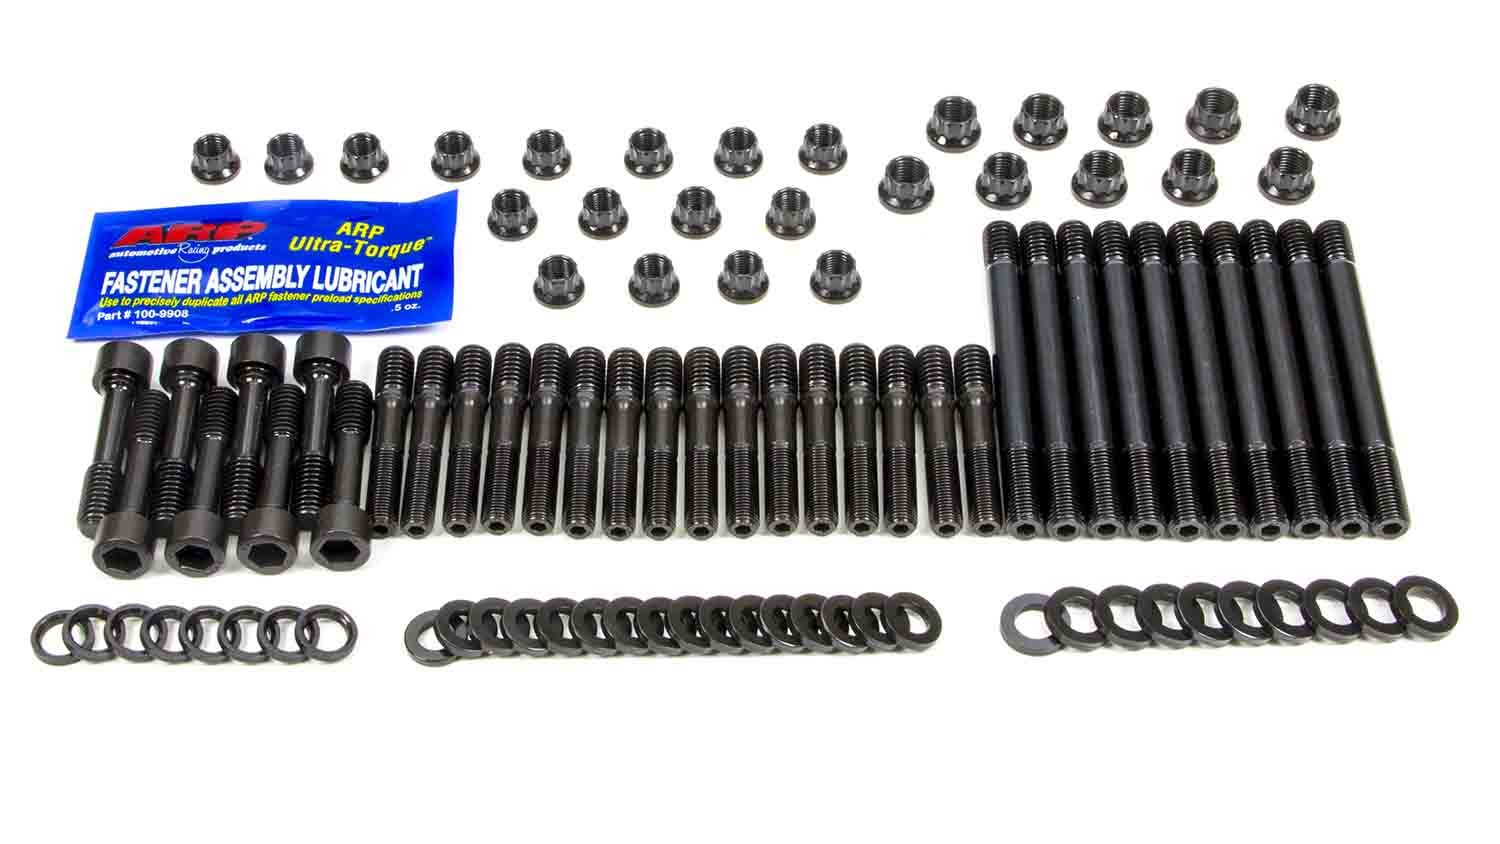 ARP 234-4722 Pro Series Black Oxide 12-Point Cylinder Head Stud Kit for Small Block Chevy with Under Cut SB2 Head